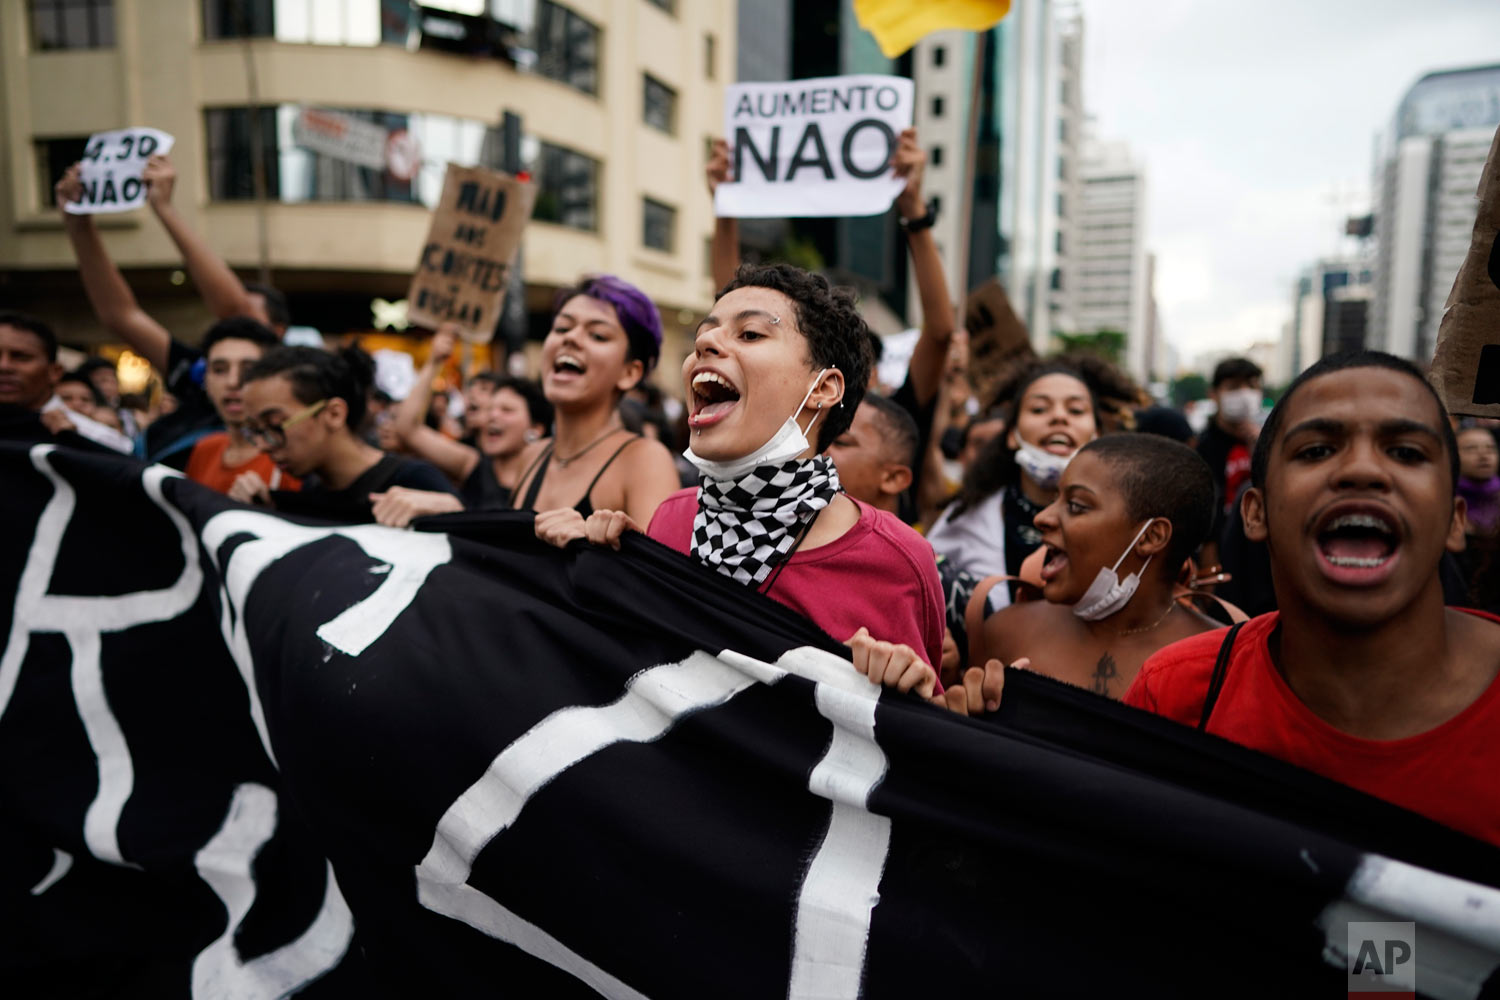 Demonstrators protest a hike in bus fare, almost 7.5 percent, in Sao Paulo, Brazil, Jan. 22, 2019. (AP Photo/Victor R. Caivano)